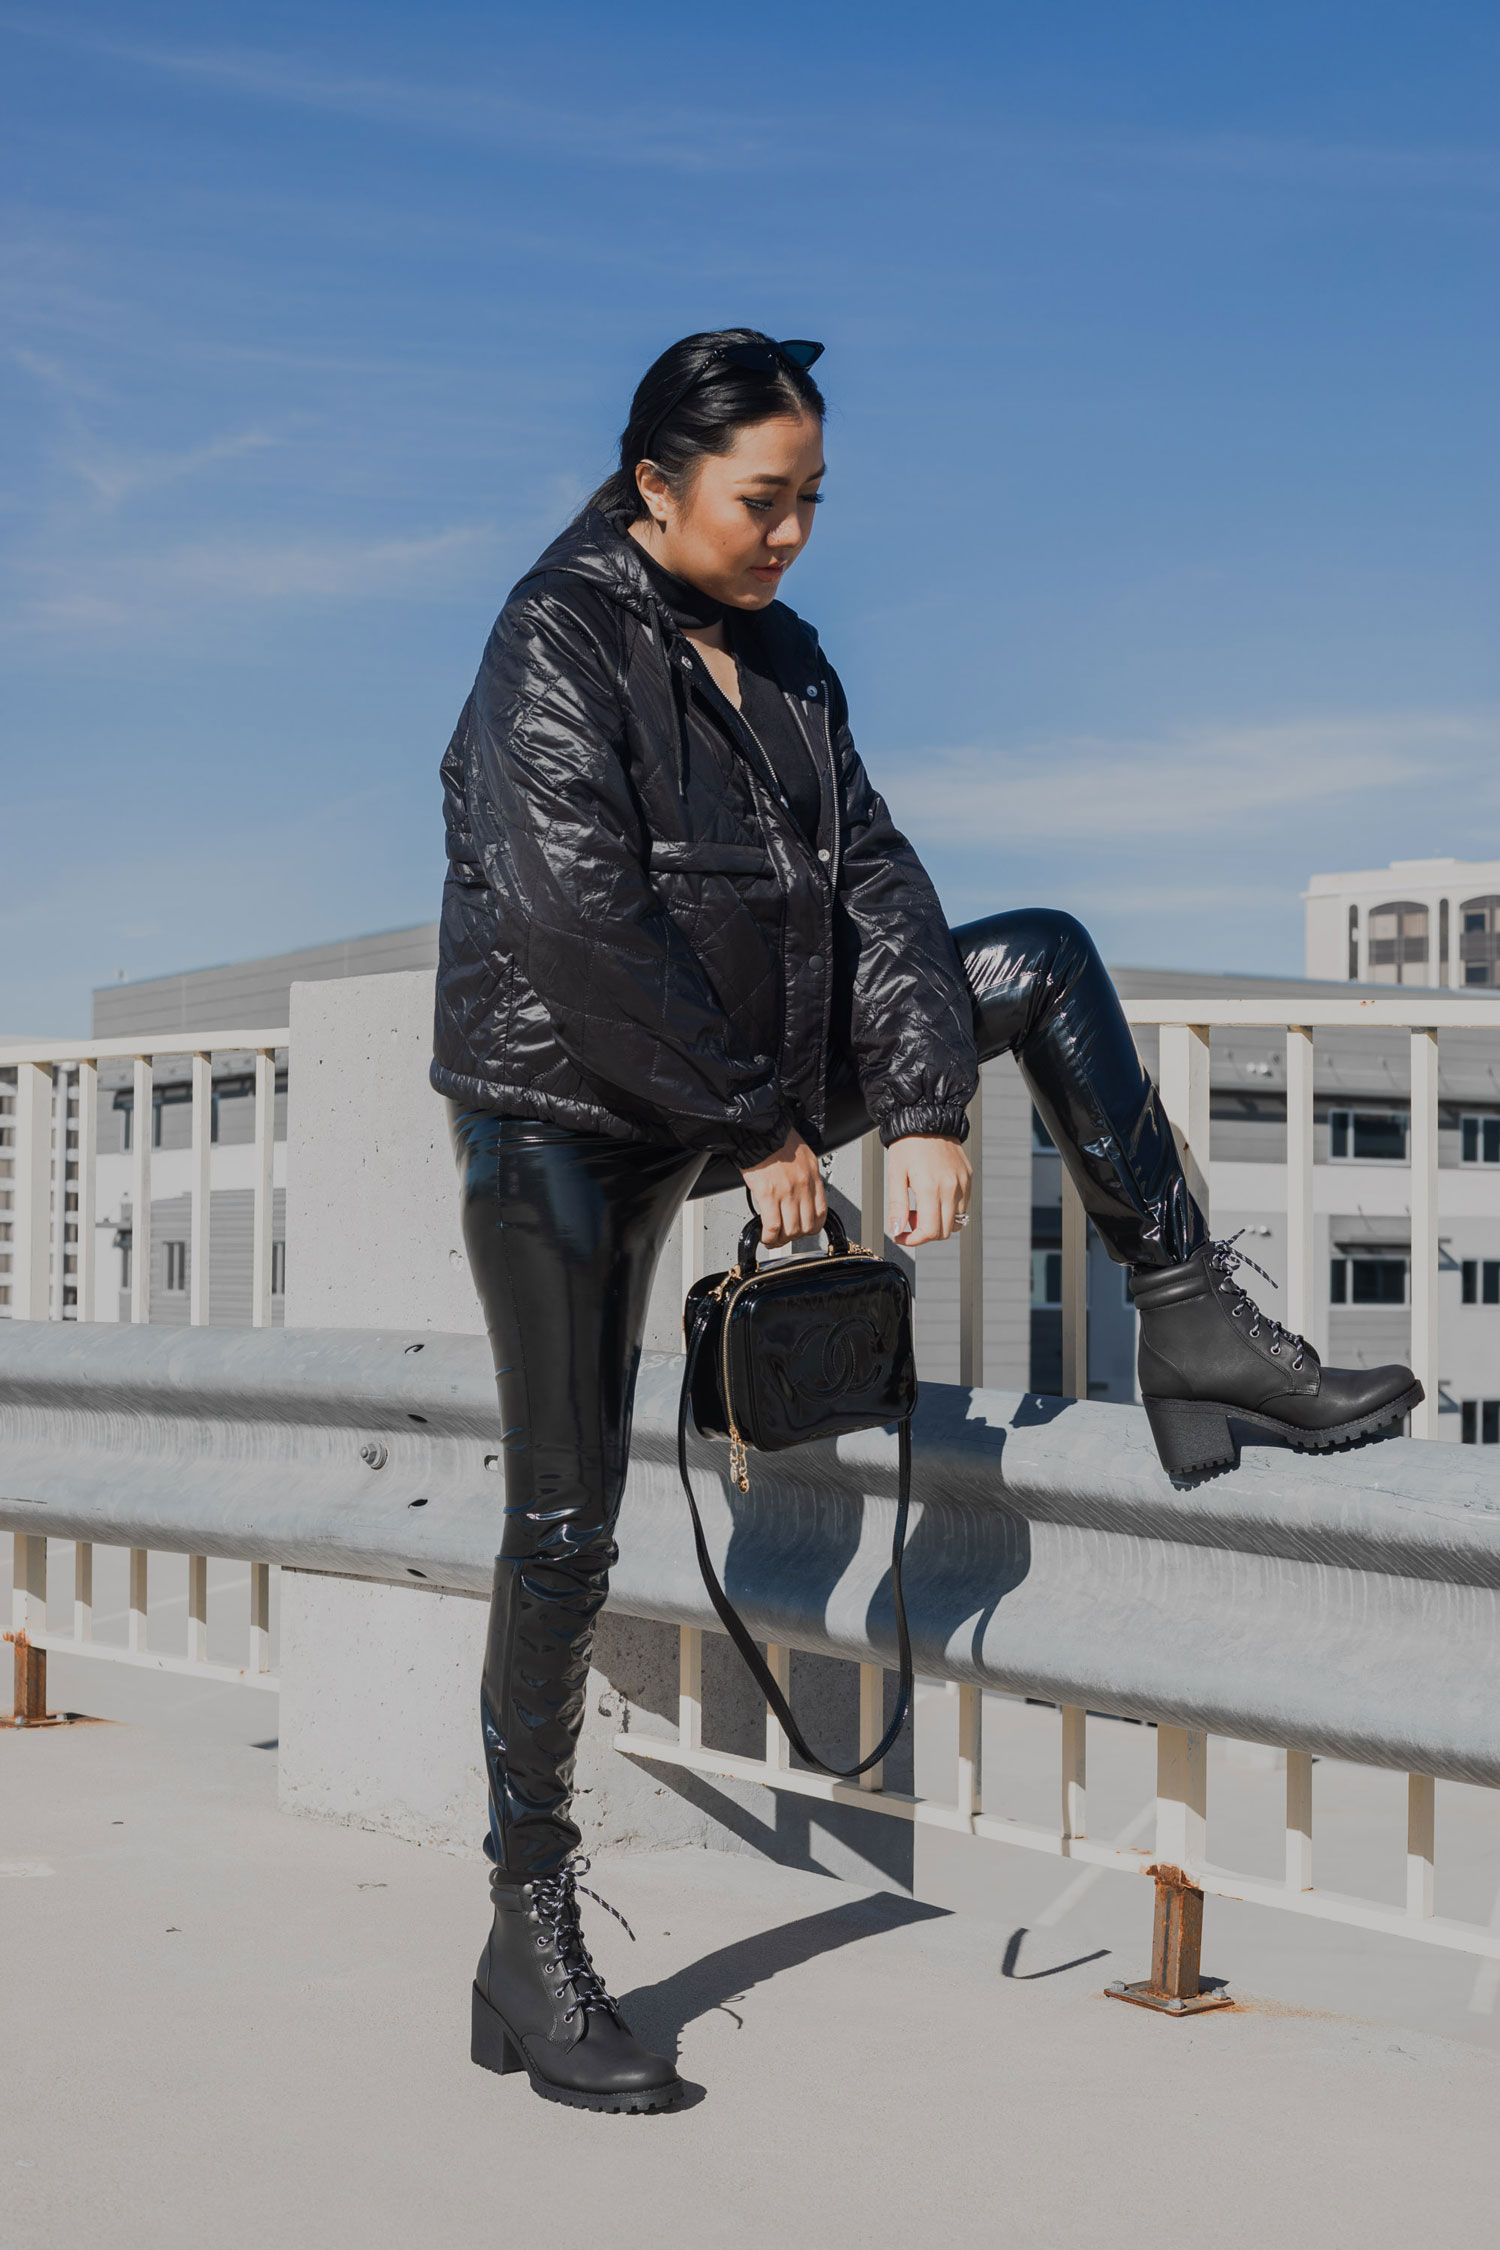 Last Minute Holiday Outfit | Vinyl Leggings and Quilted Jacket #GoodVibesGifting Day 4_12-20-2018_Molly Larsen IG @thevibescloset_allaboutgoodvibes.com